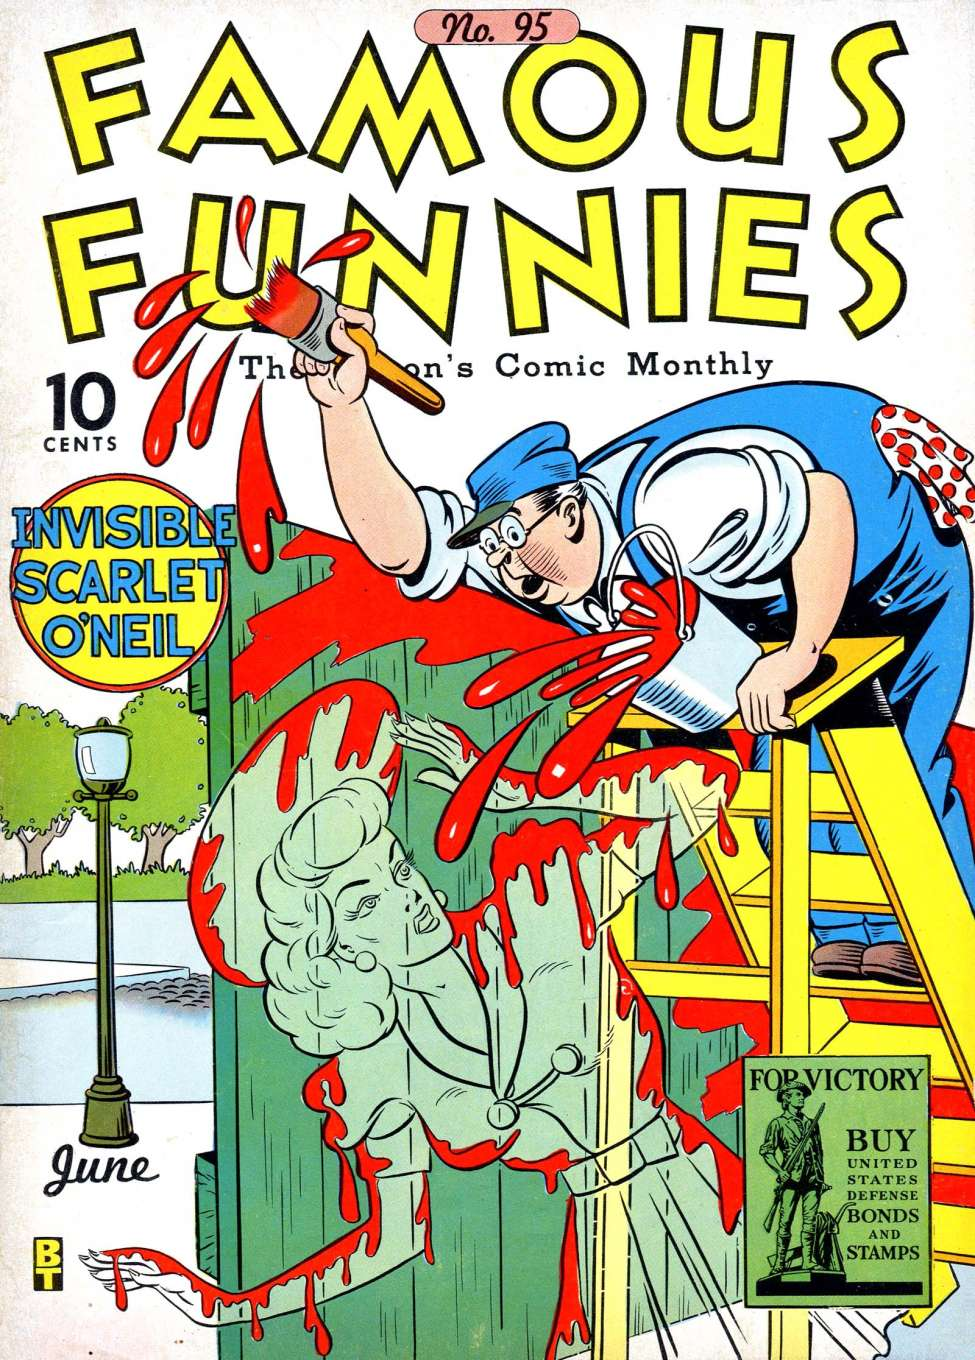 Comic Book Cover For Famous Funnies #95